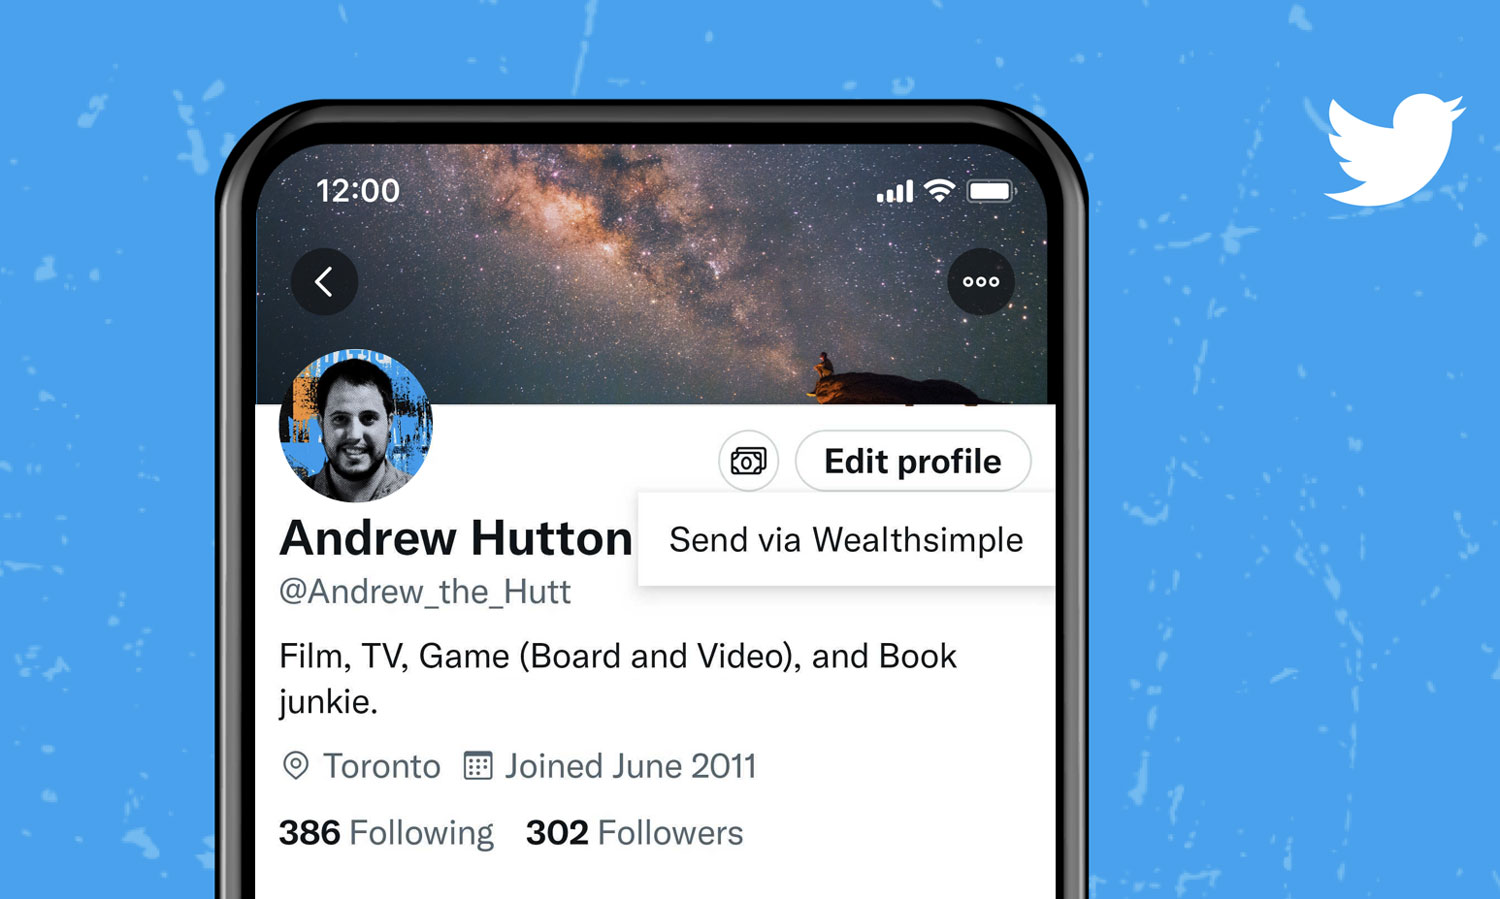 By tapping the top right corner of a Twitter profile page, you can tip an account using a Wealthsimple cash account.